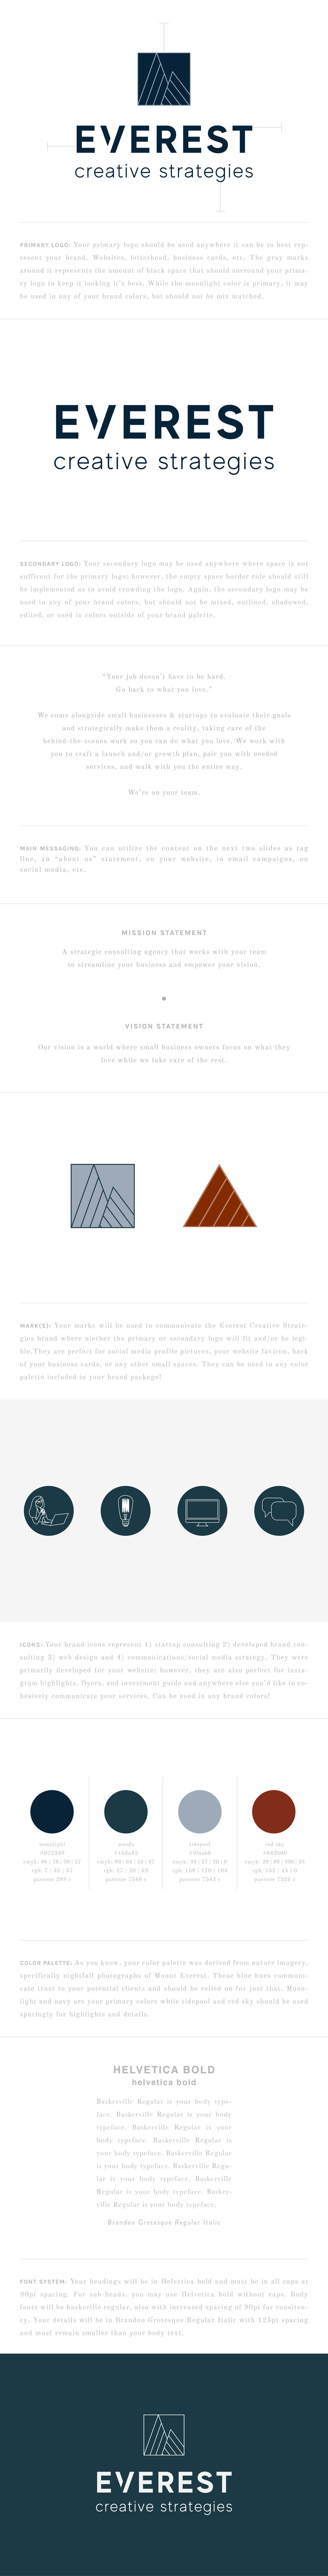 style-guide-everest-strategy-telltale-design-co